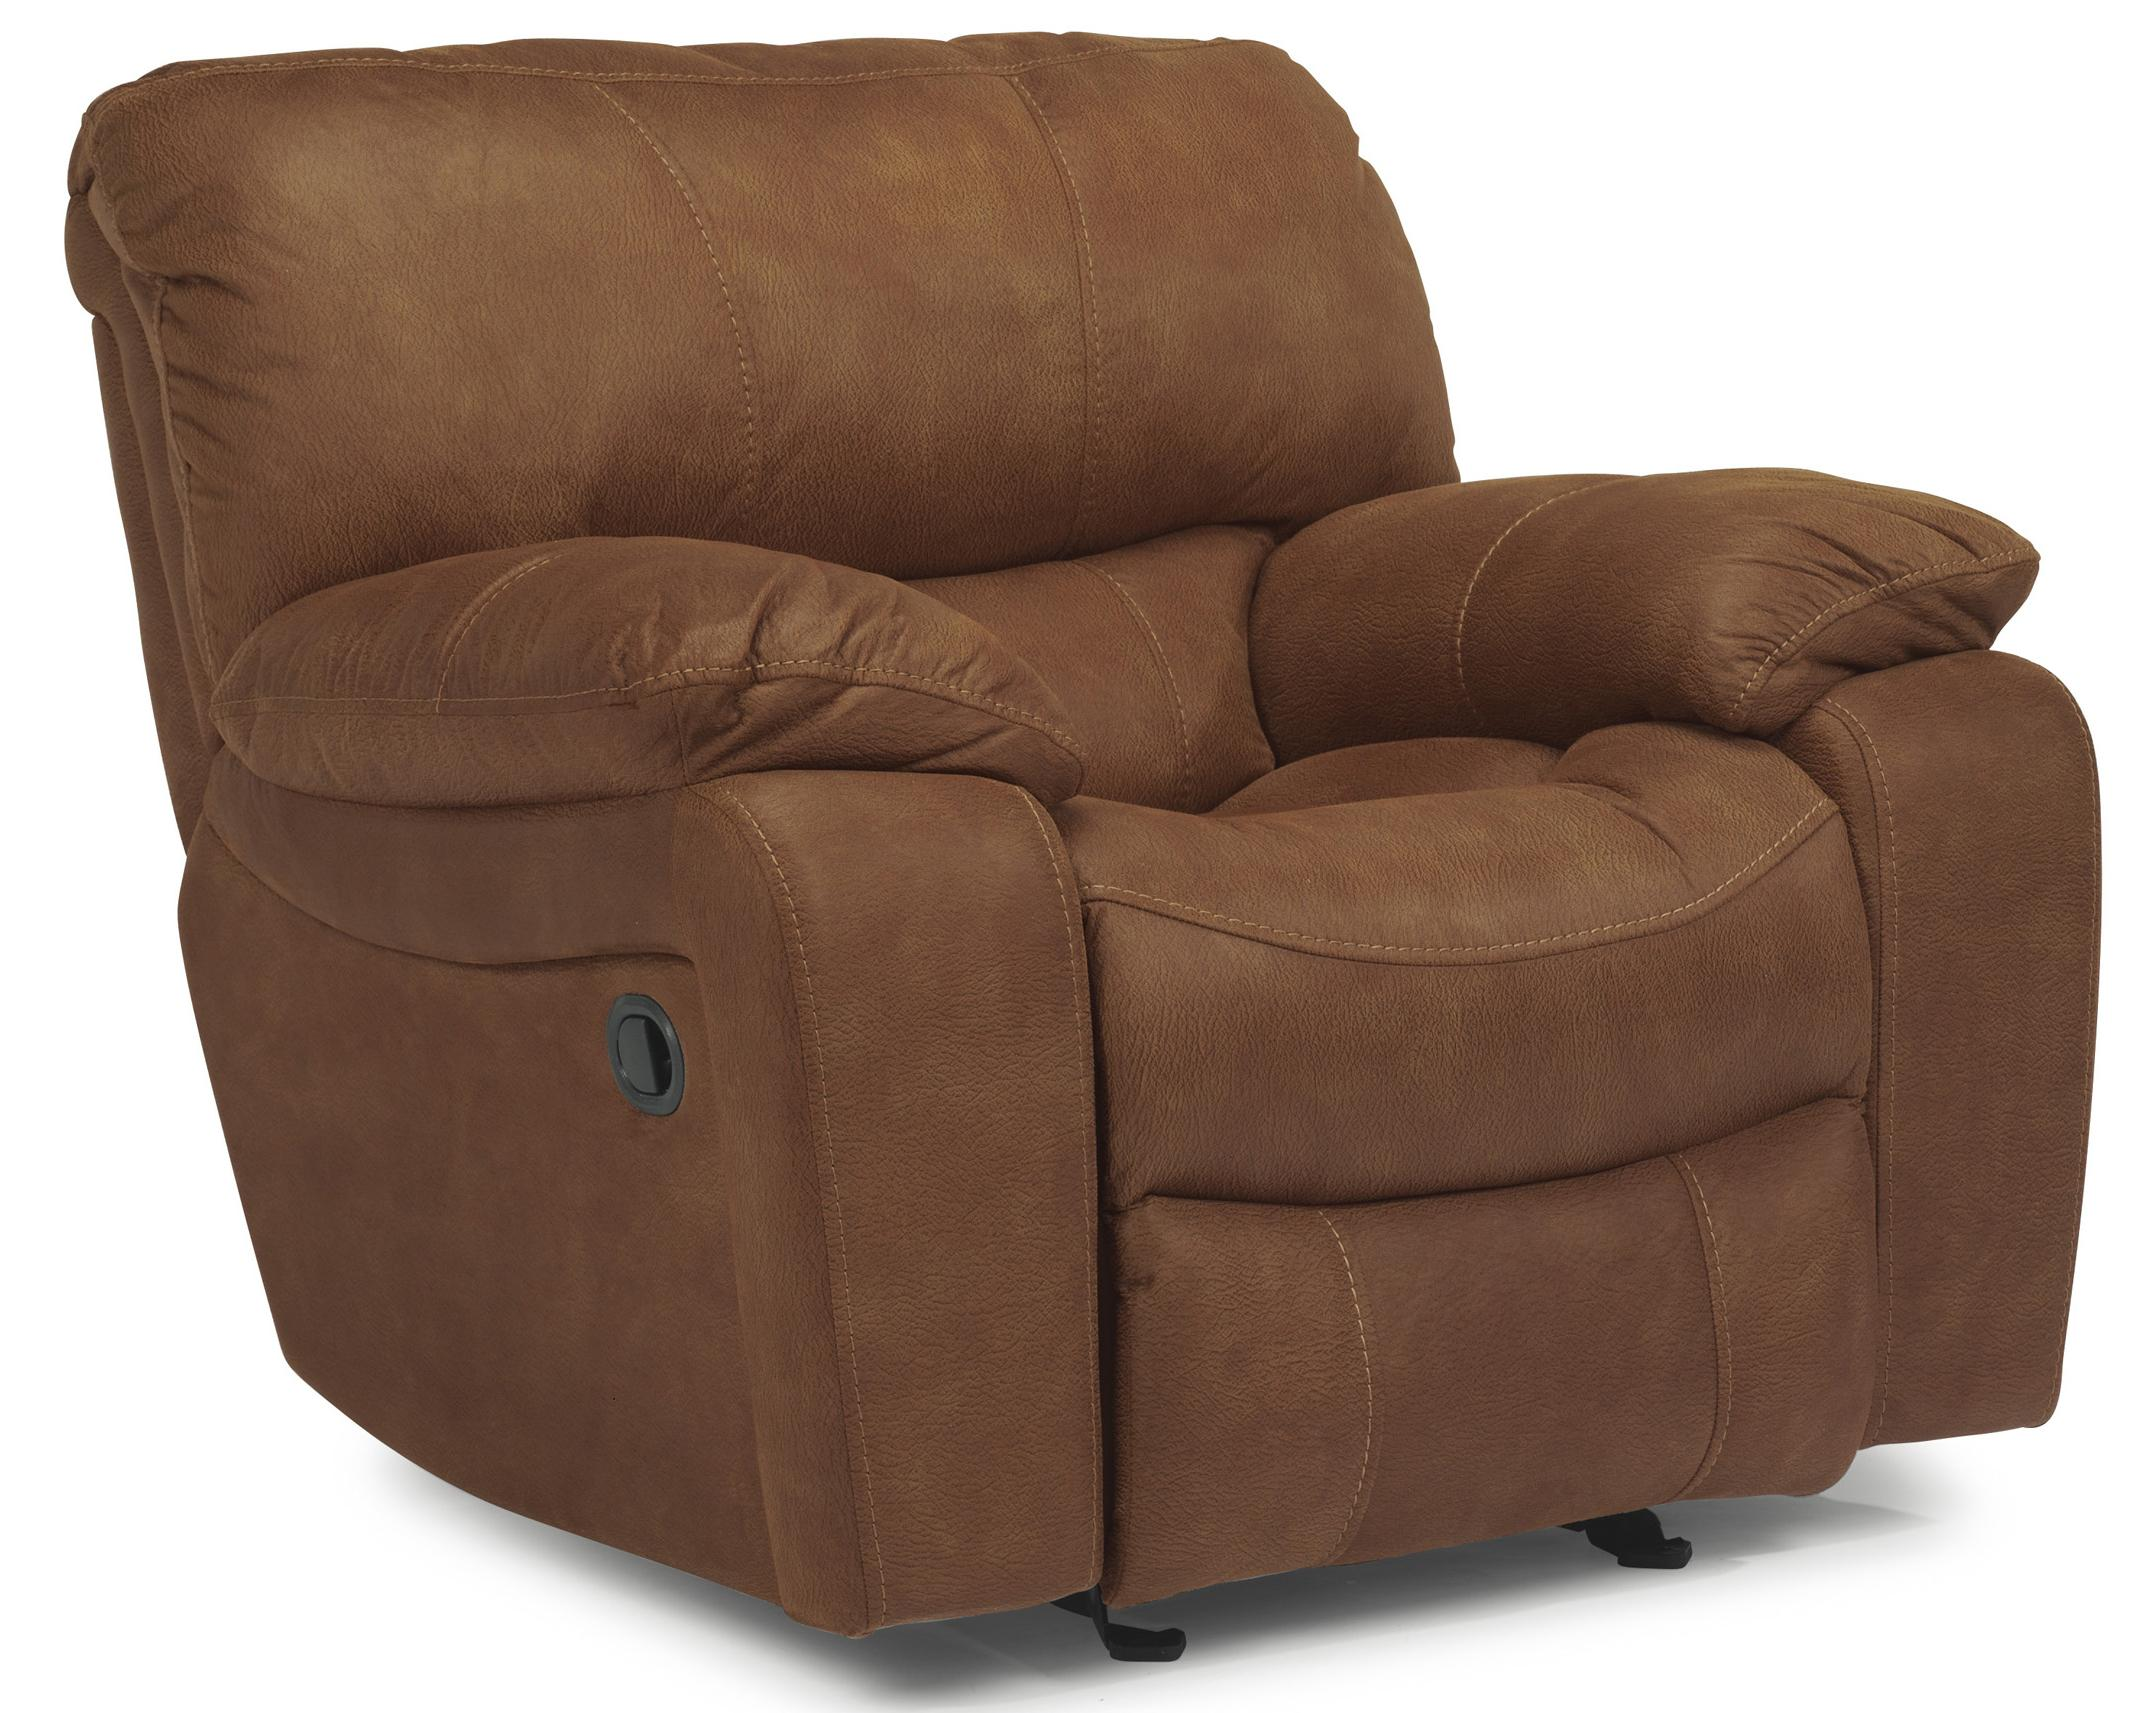 Flexsteel Latitudes - Grandview Power Recliner - Item Number: 1541-50P